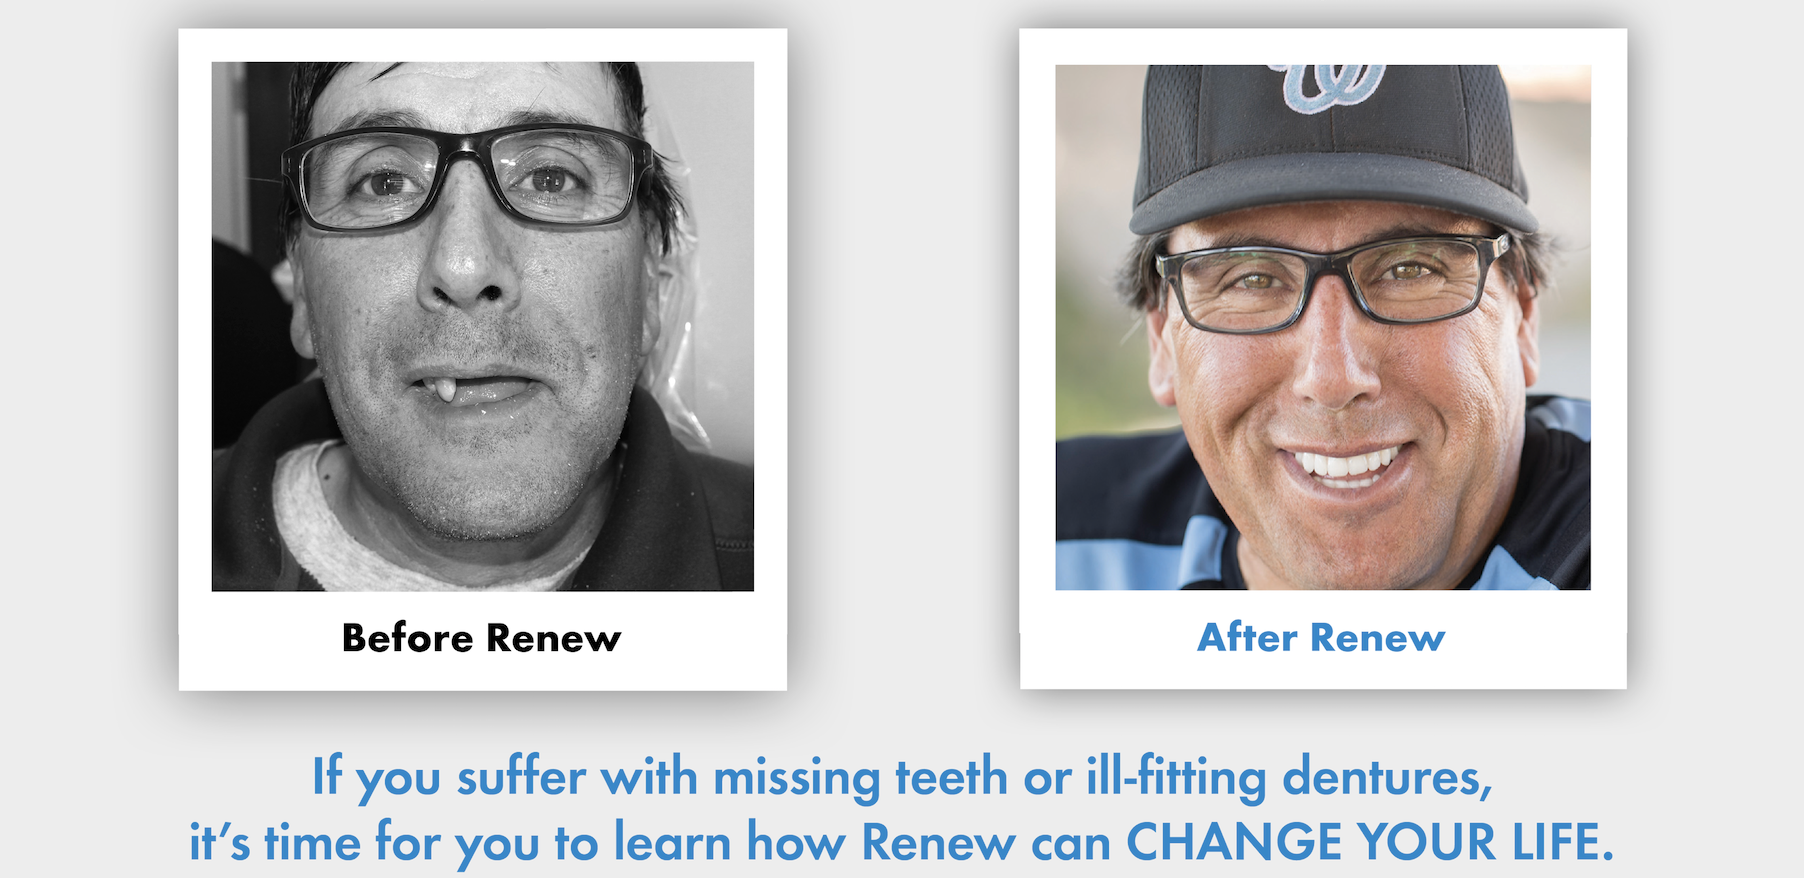 snap-denture-dental-implant-renew-anchored-dentures